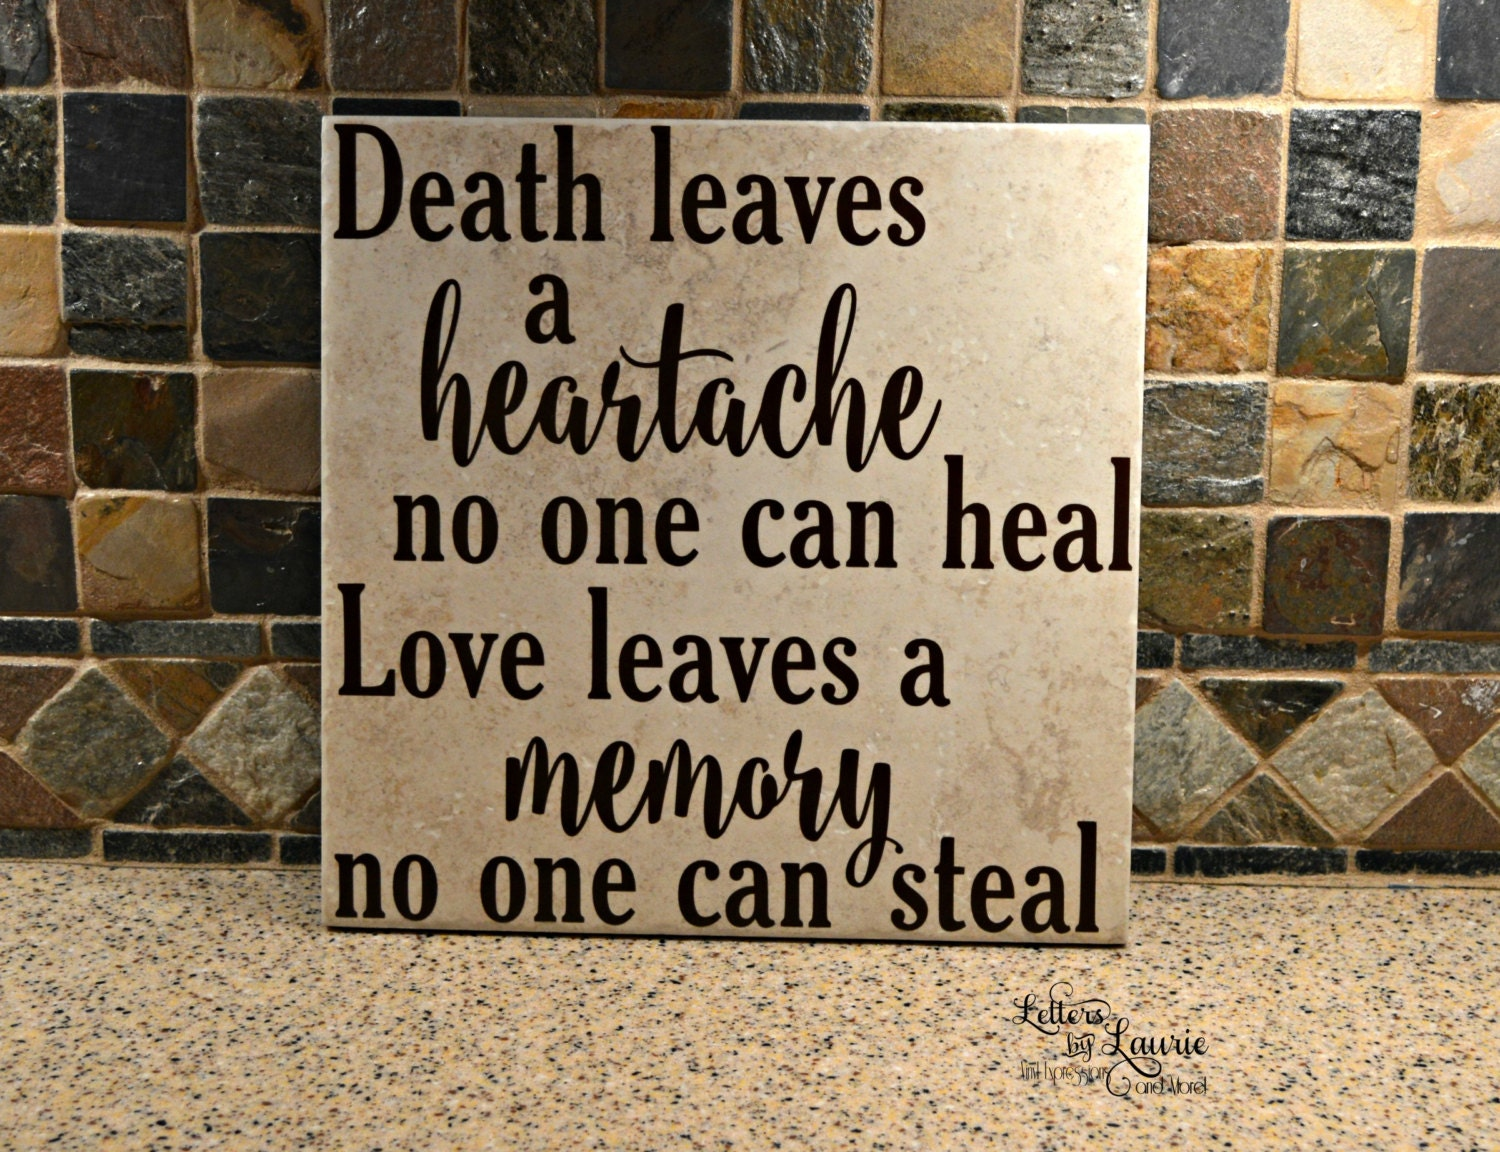 In Loving Memory Gift Death Leaves a Heartache no one can